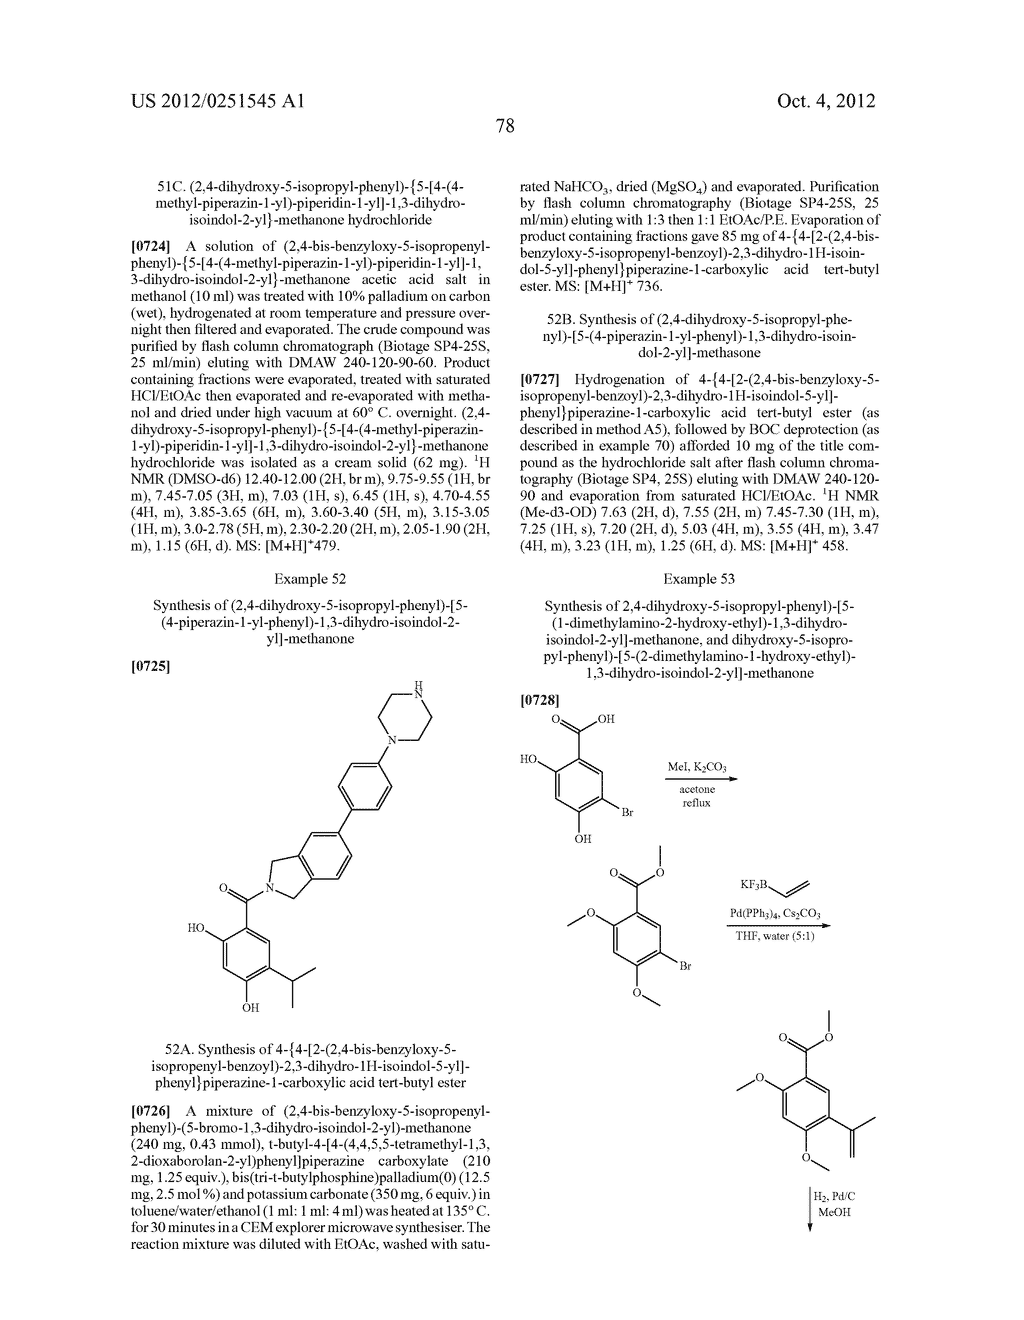 Therapeutic Combinations Of Hydroxybenzamide Derivatives As Inhibitors Of     HSP90 - diagram, schematic, and image 79